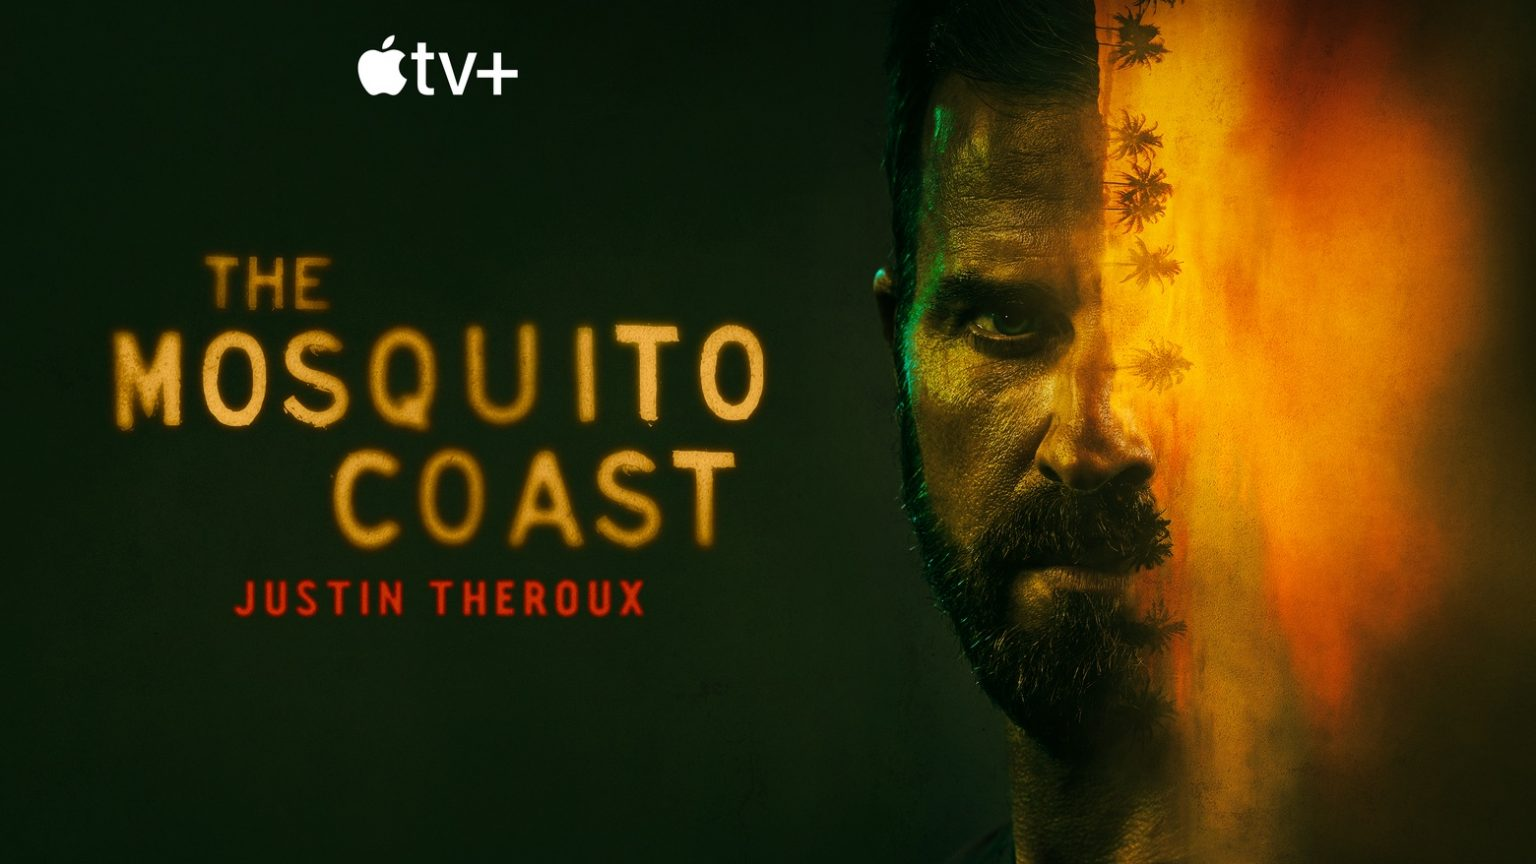 'The Mosquito Coast' will bring more on-the-run adventure to Apple TV+ in season 2